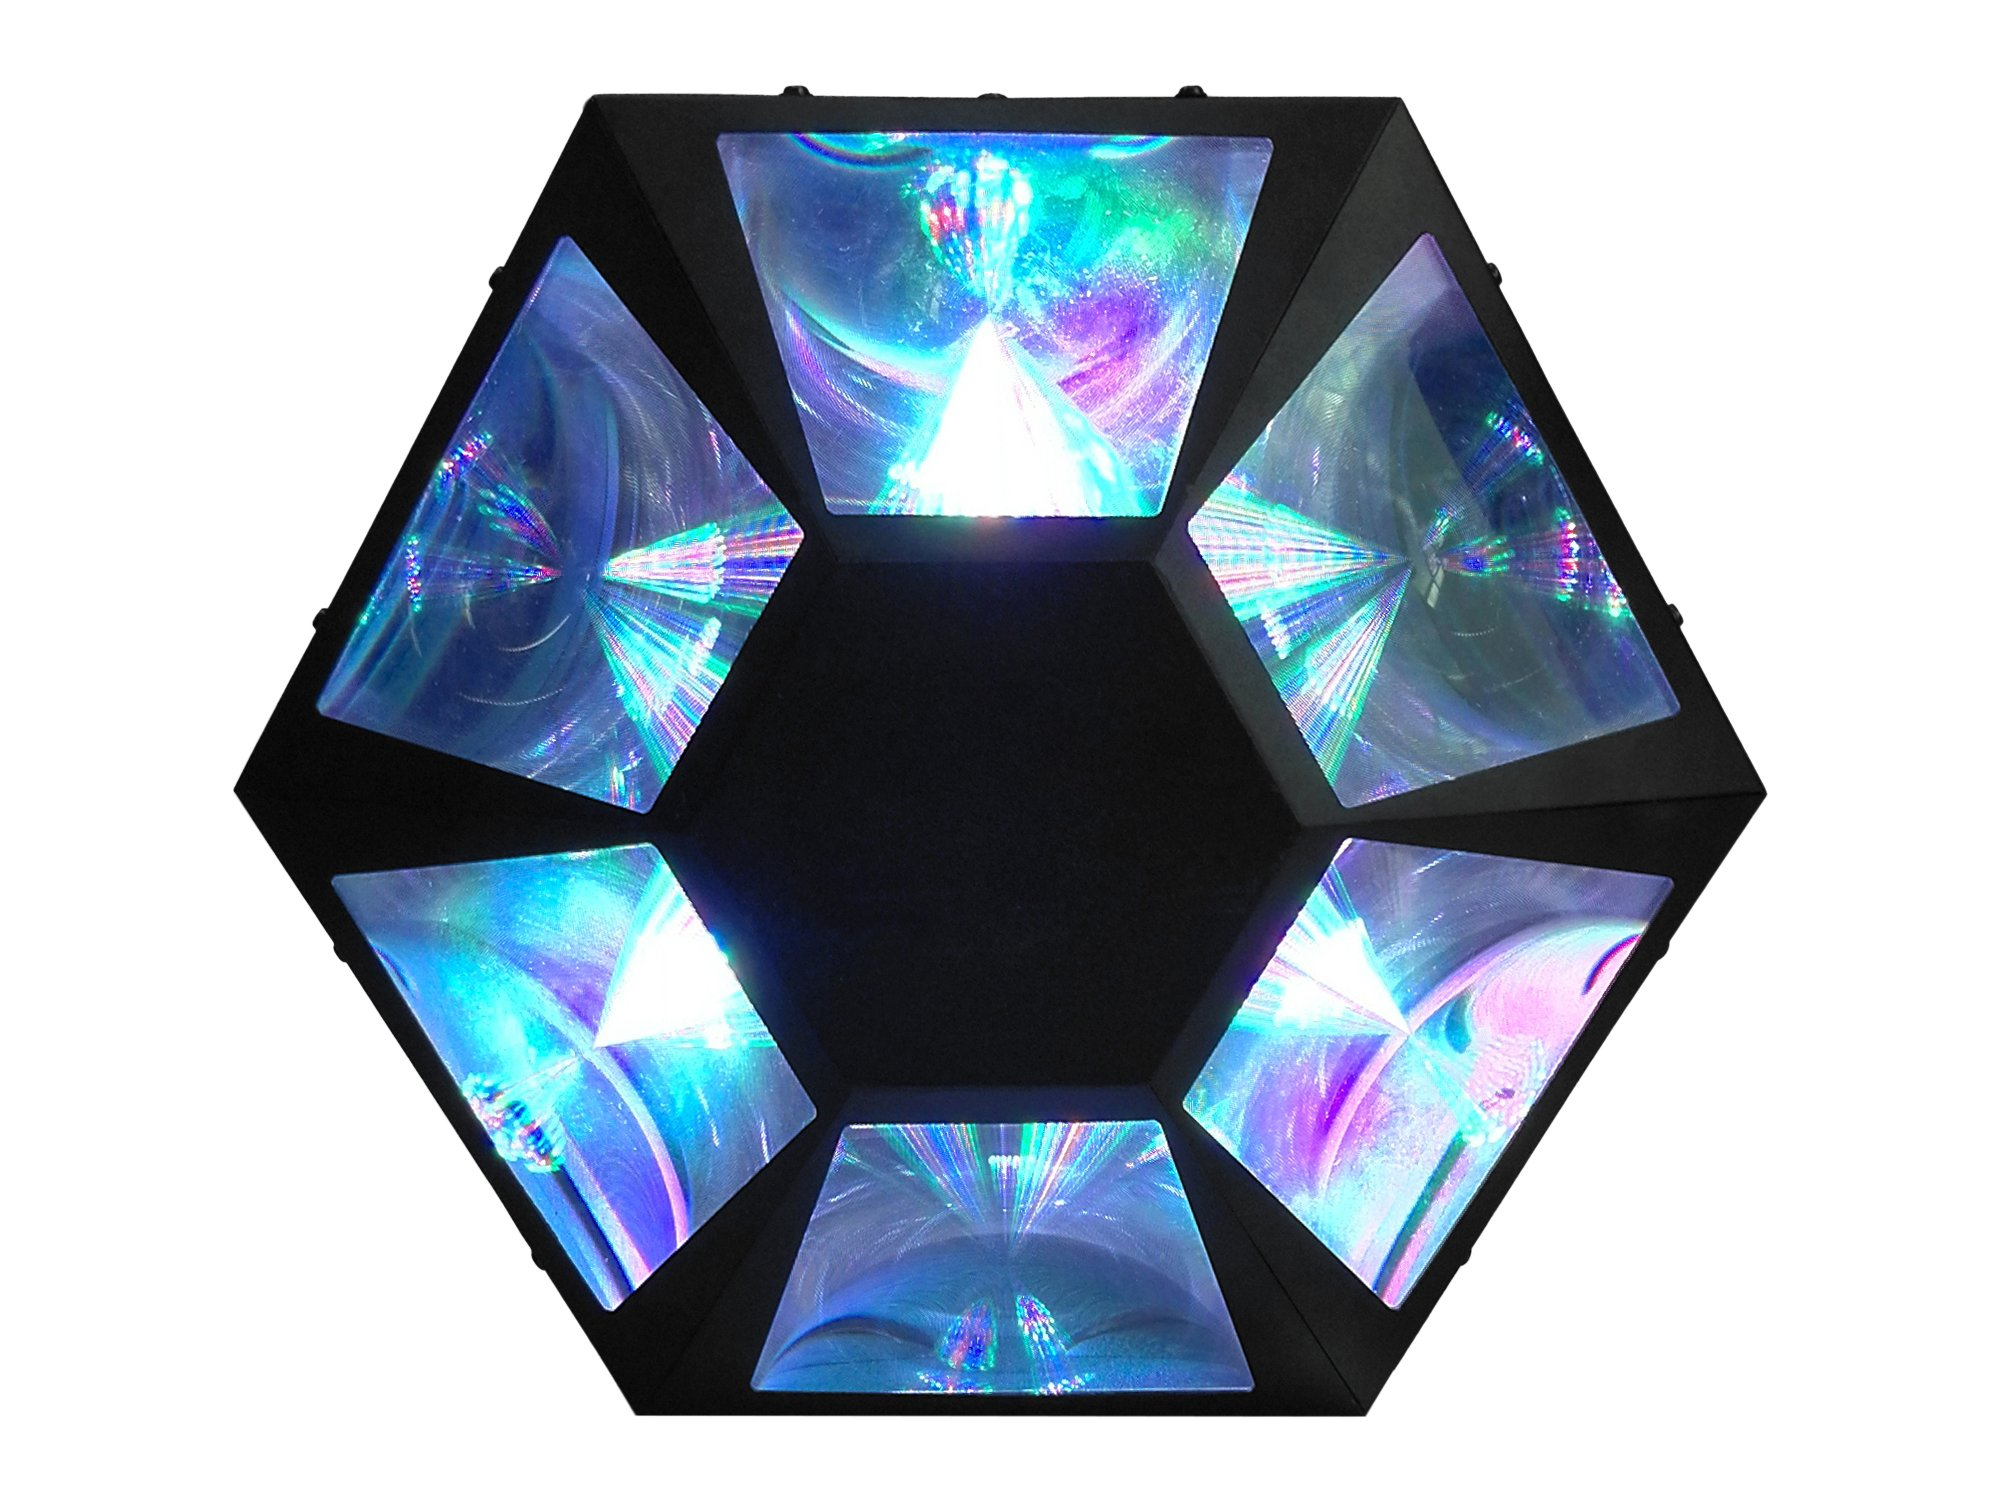 Technical Pro LGUFOx Multi Beam LED Globe